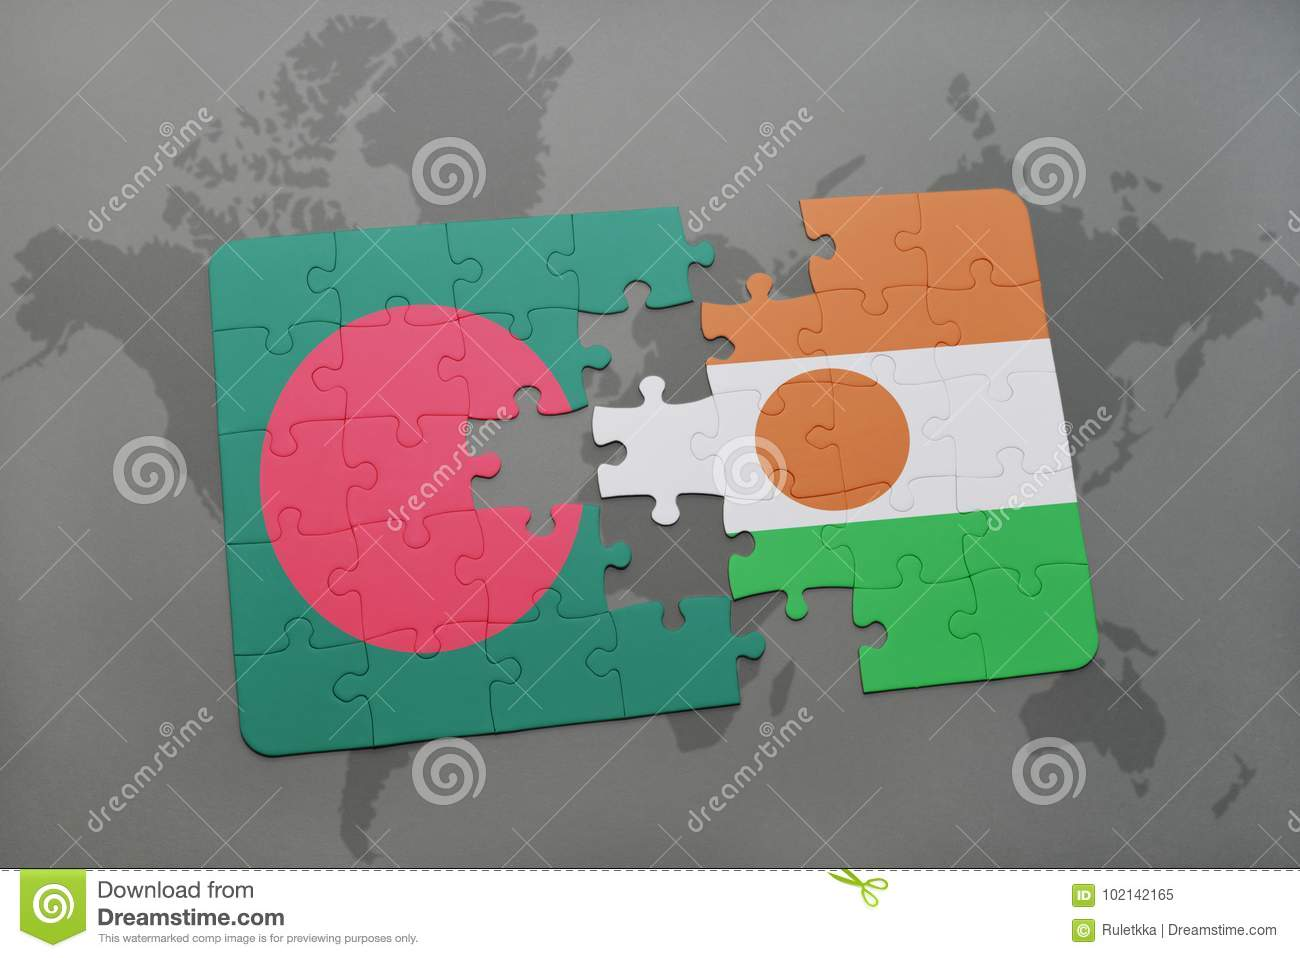 Puzzle with the national flag of bangladesh and niger on a world map download comp gumiabroncs Choice Image